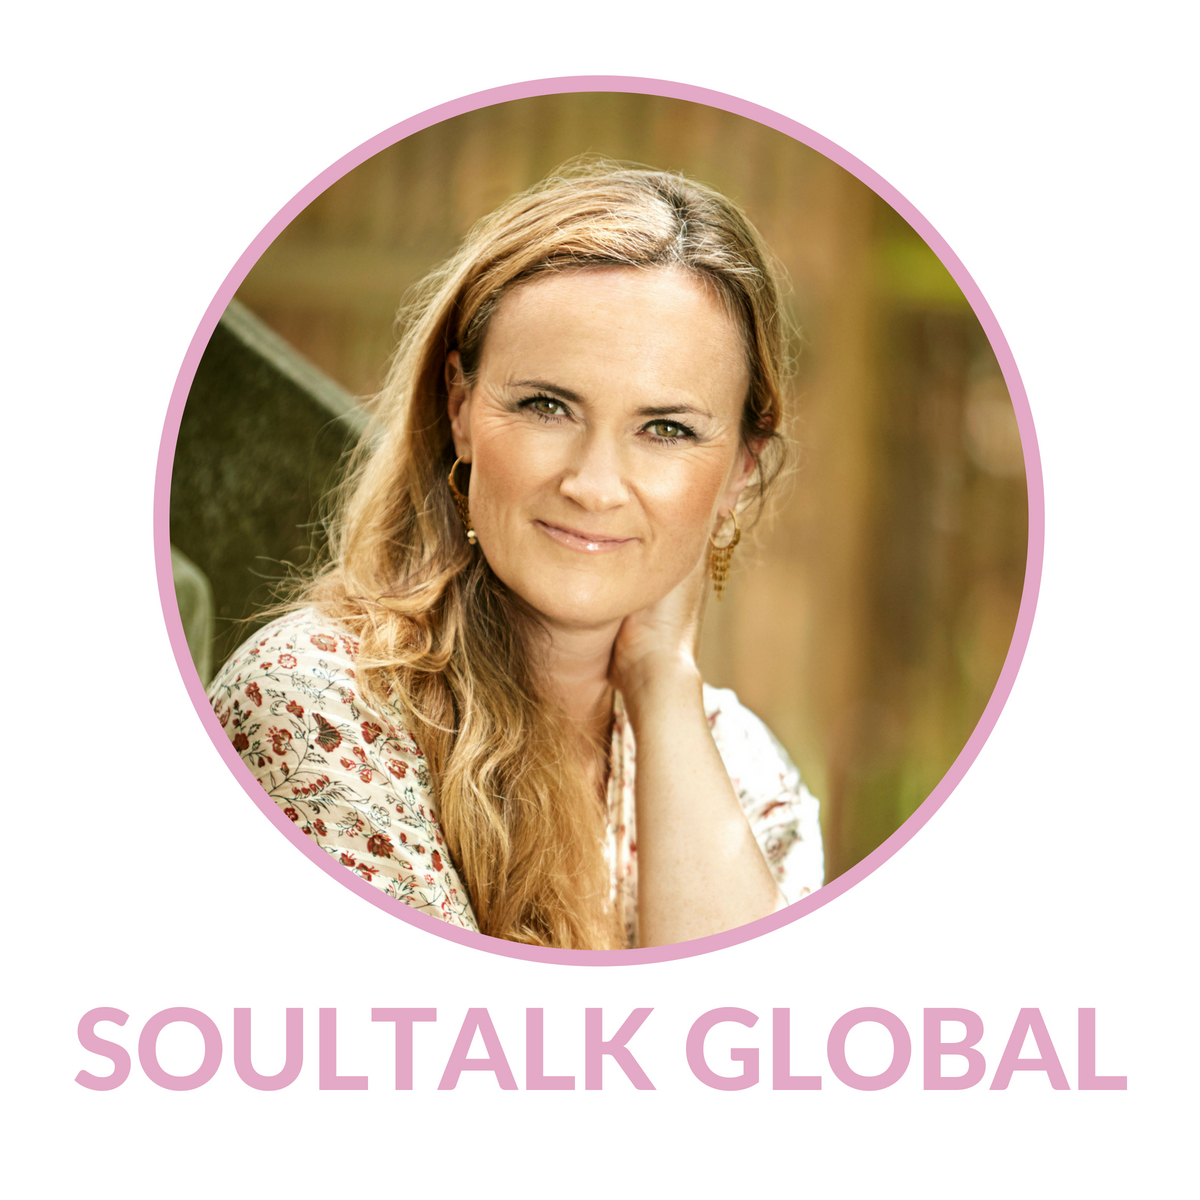 Soultalk - Global-rosa 1